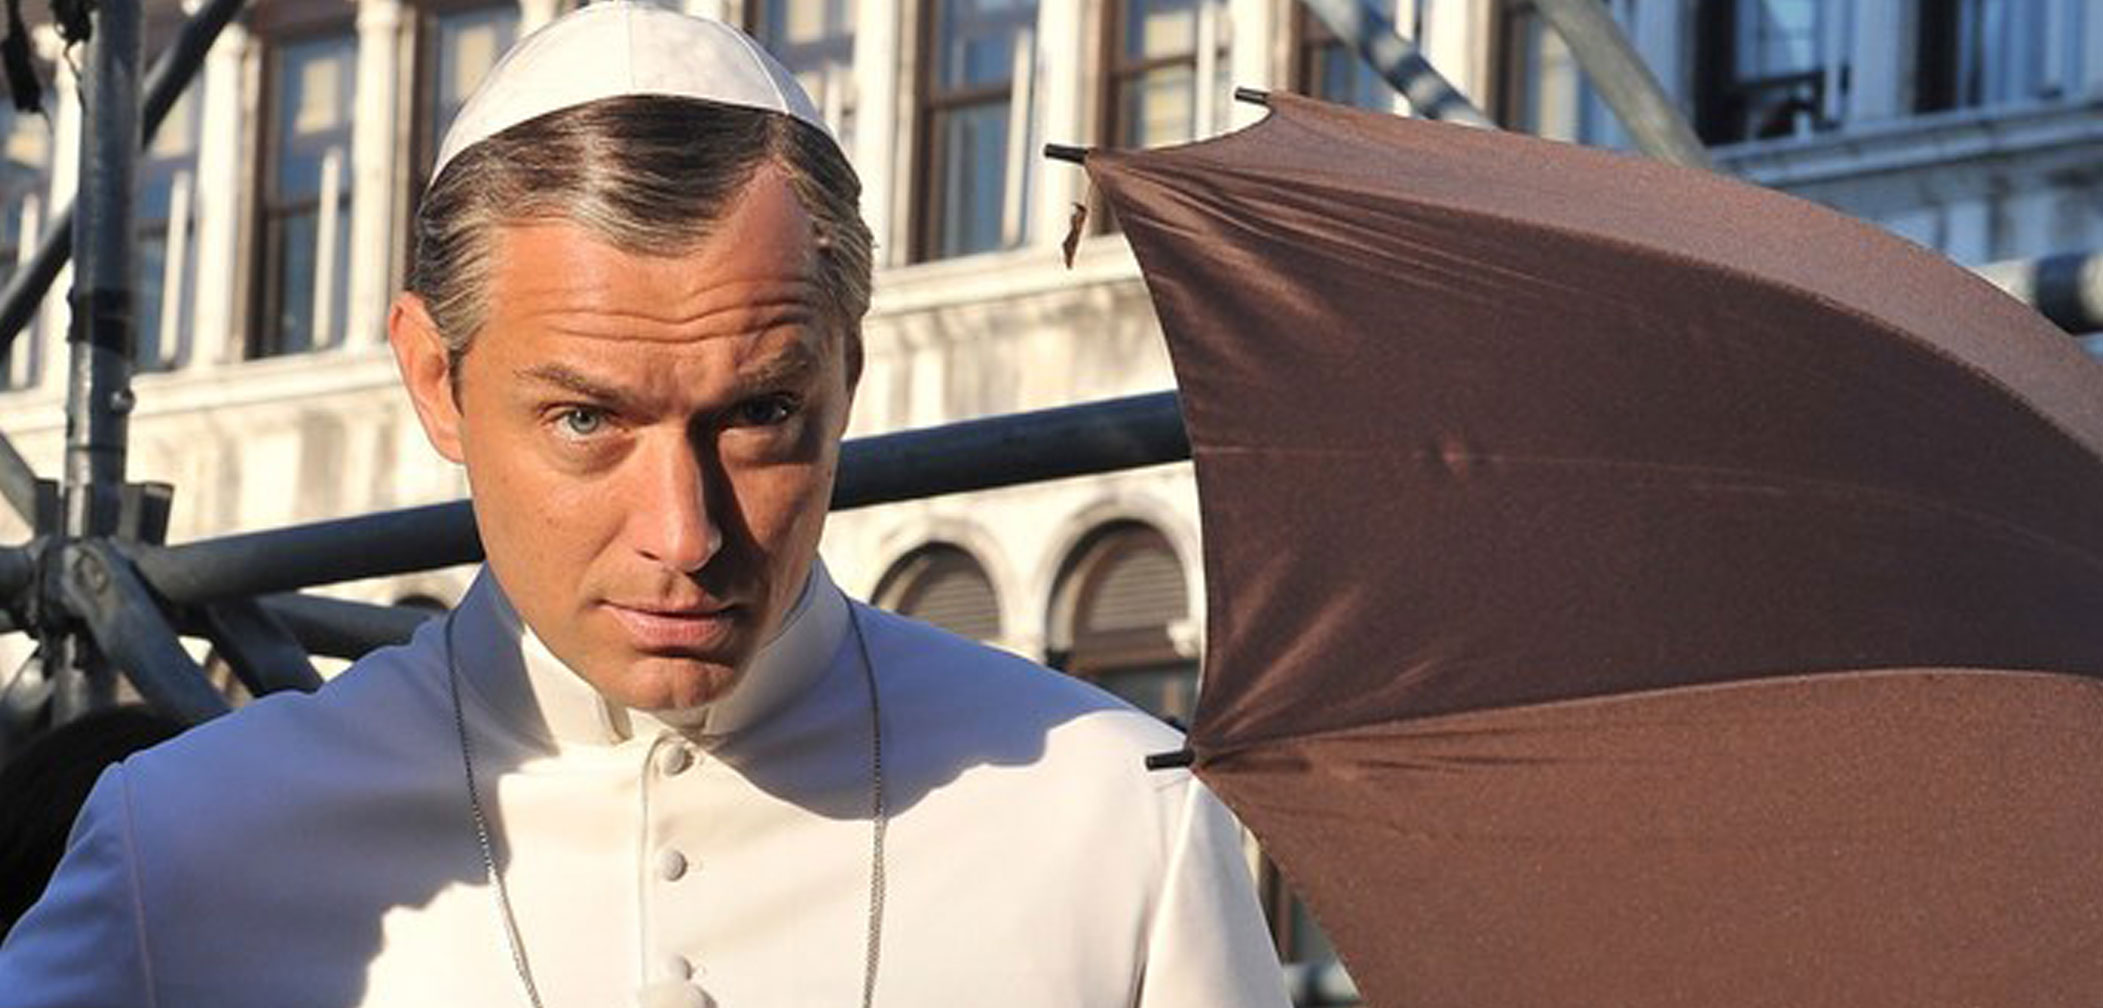 Jude Law Bares His Butt in 'The Young Pope' (Photos)